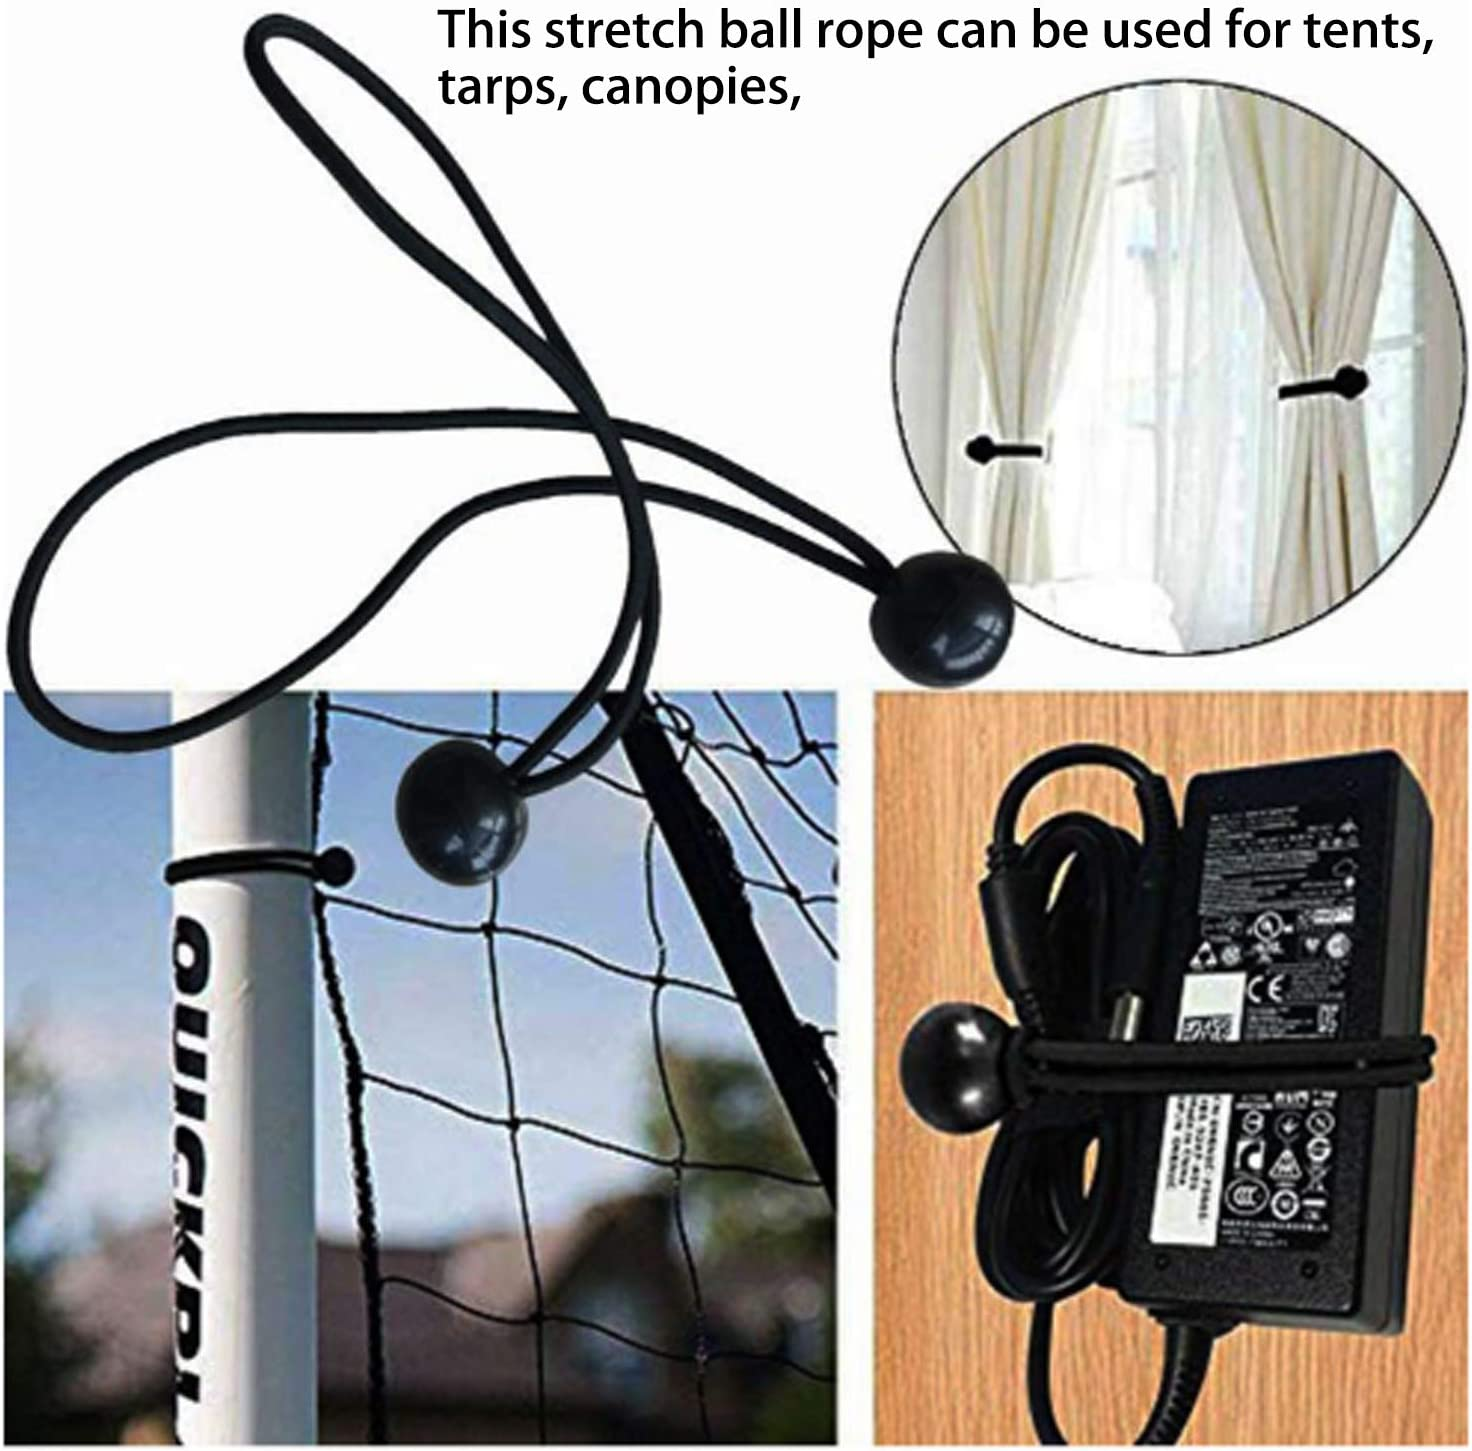 25 Piece Ball Bungee Cords 6 Inch Canopy Tarp Tie Down Cord